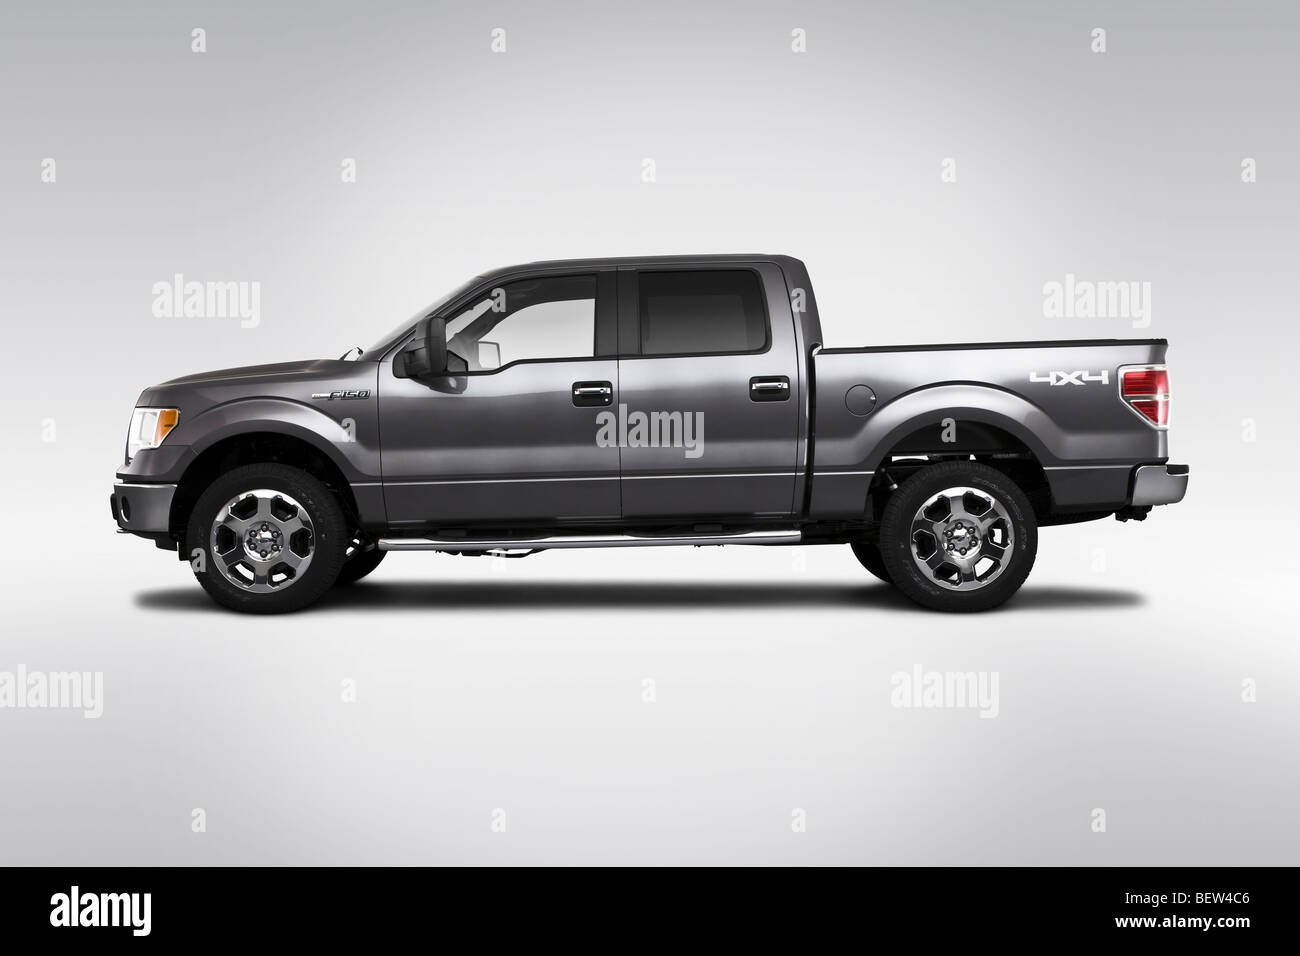 2010 Ford F-150 XLT in Gray - Drivers Side Profile - Stock Image